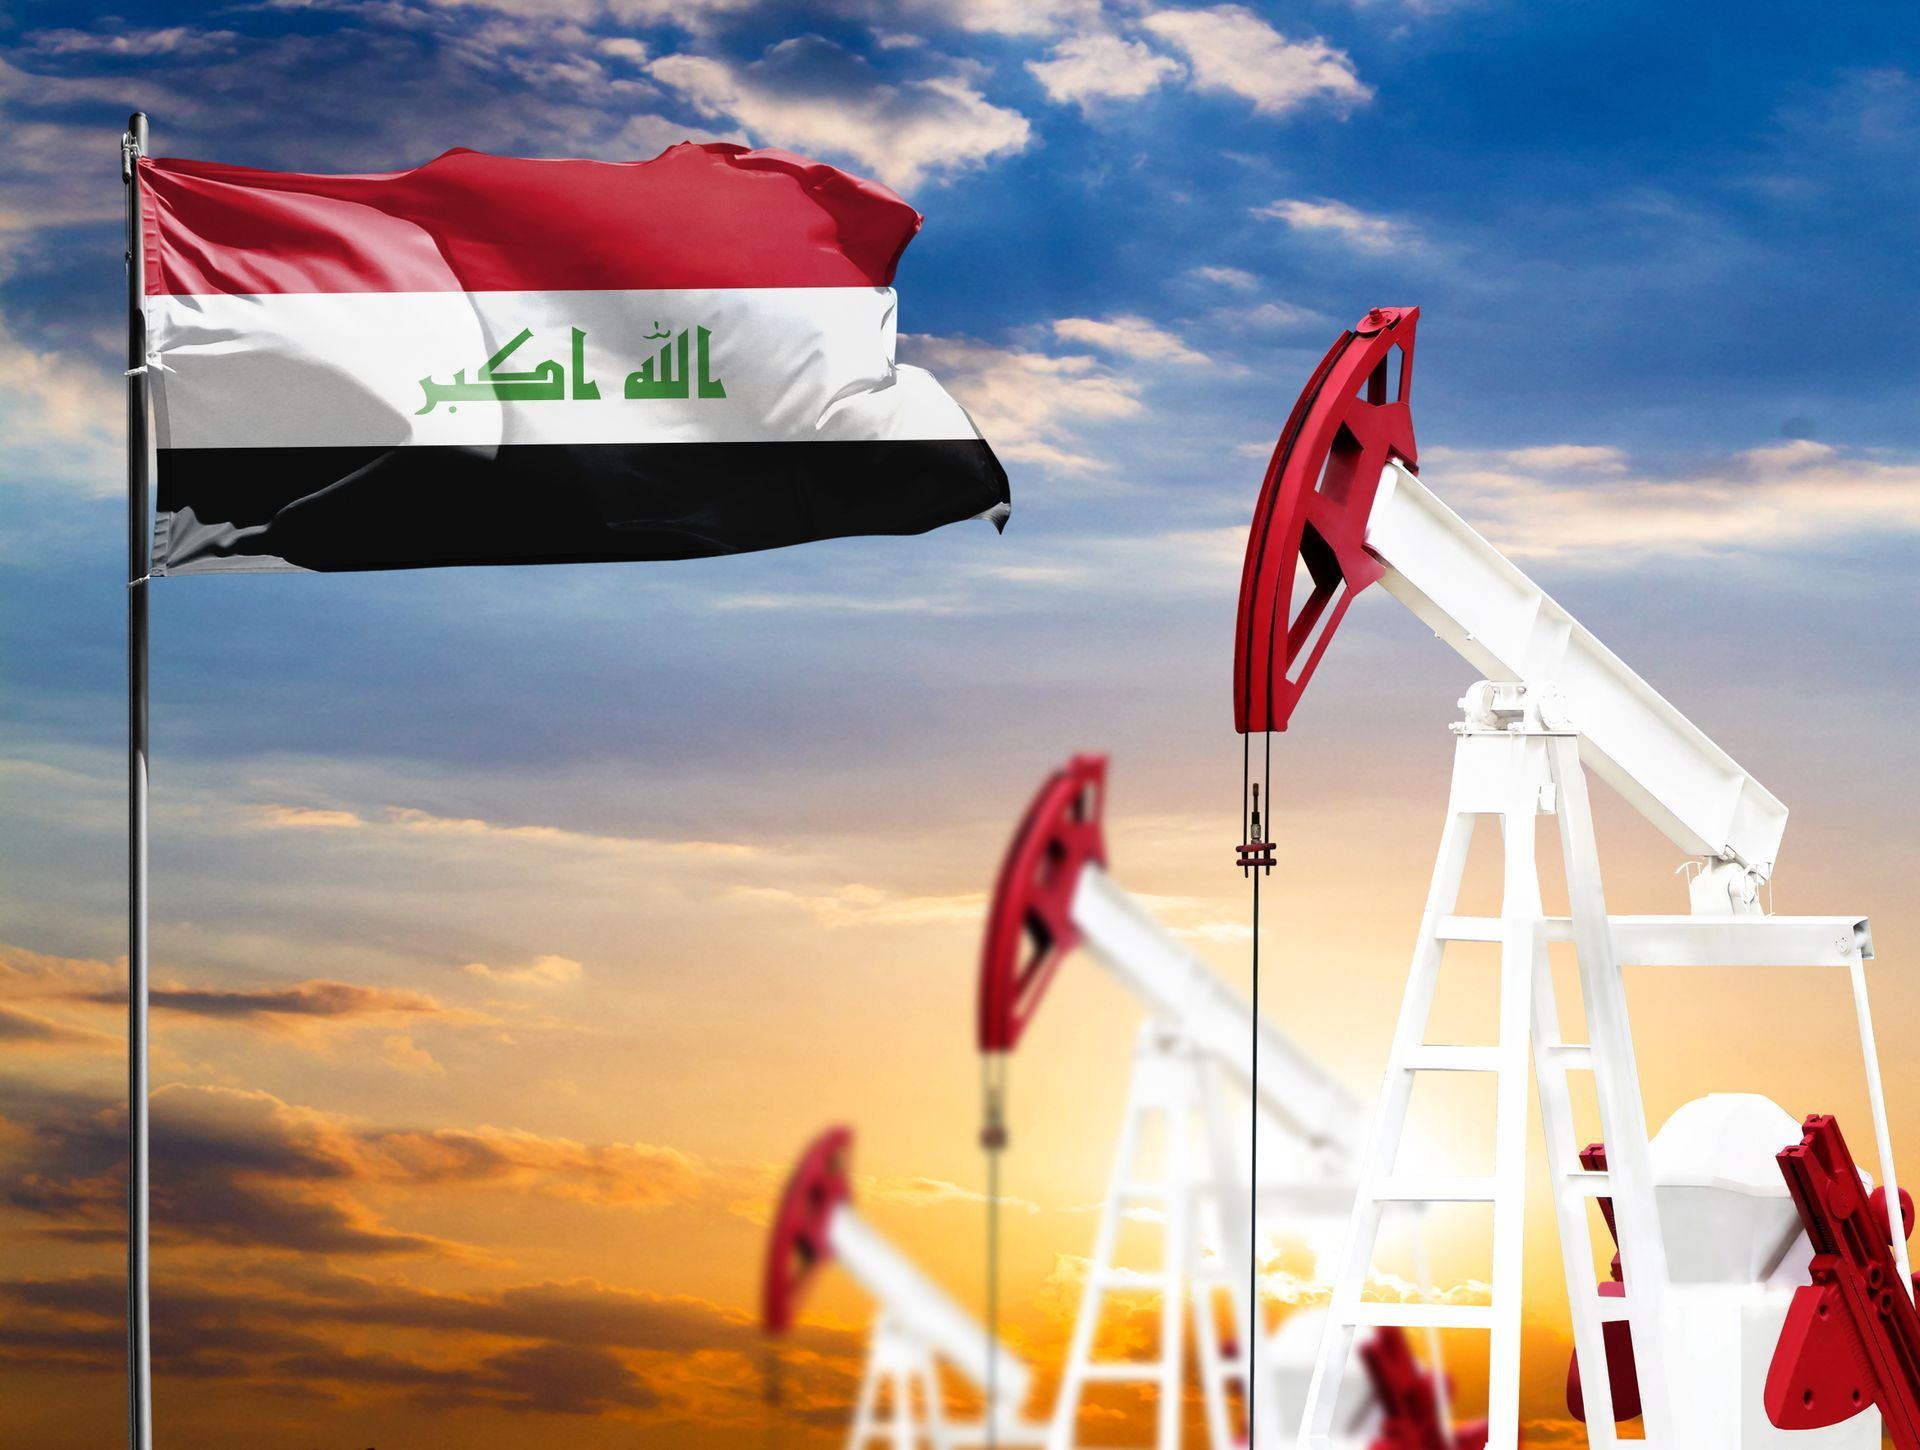 Basrah Medium: A Strong Contender for the Chinese Market